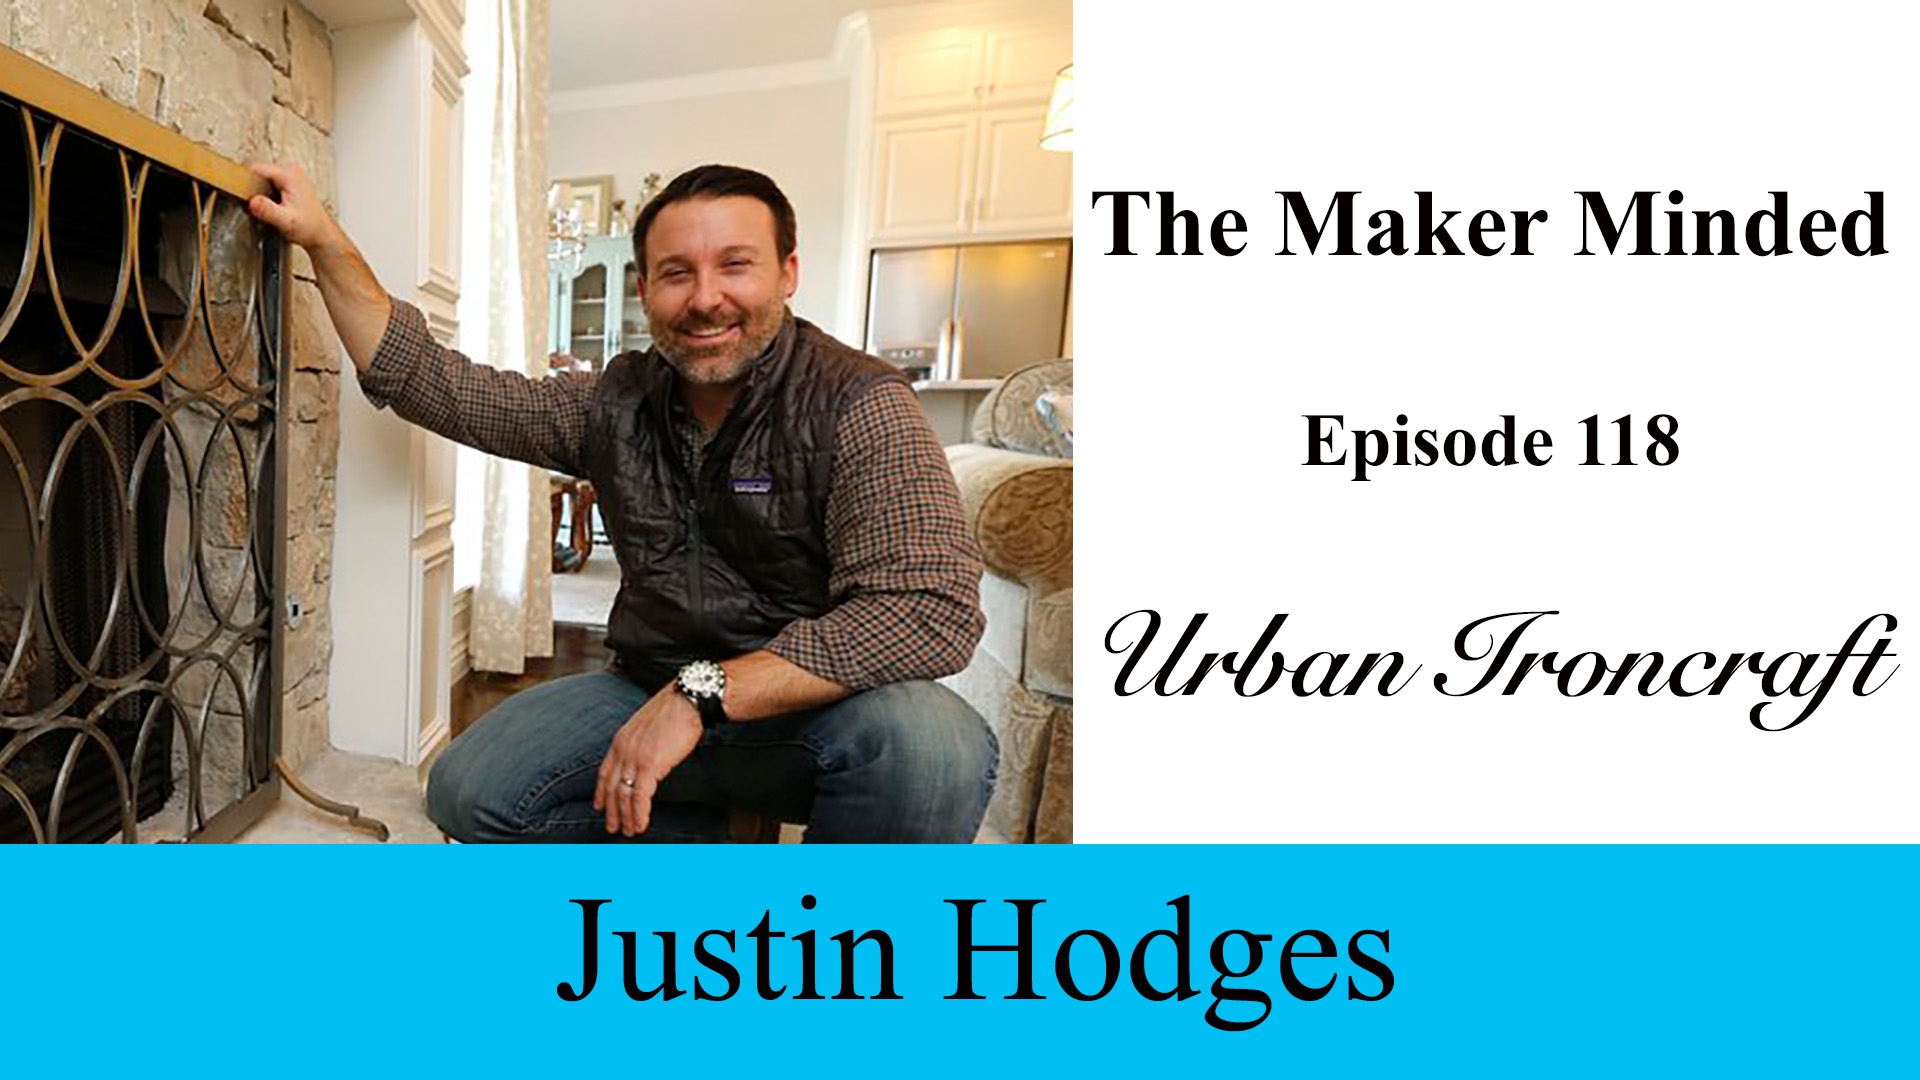 The Maker Minded Episode 118: Justin Hodges | Urban Ironcraft